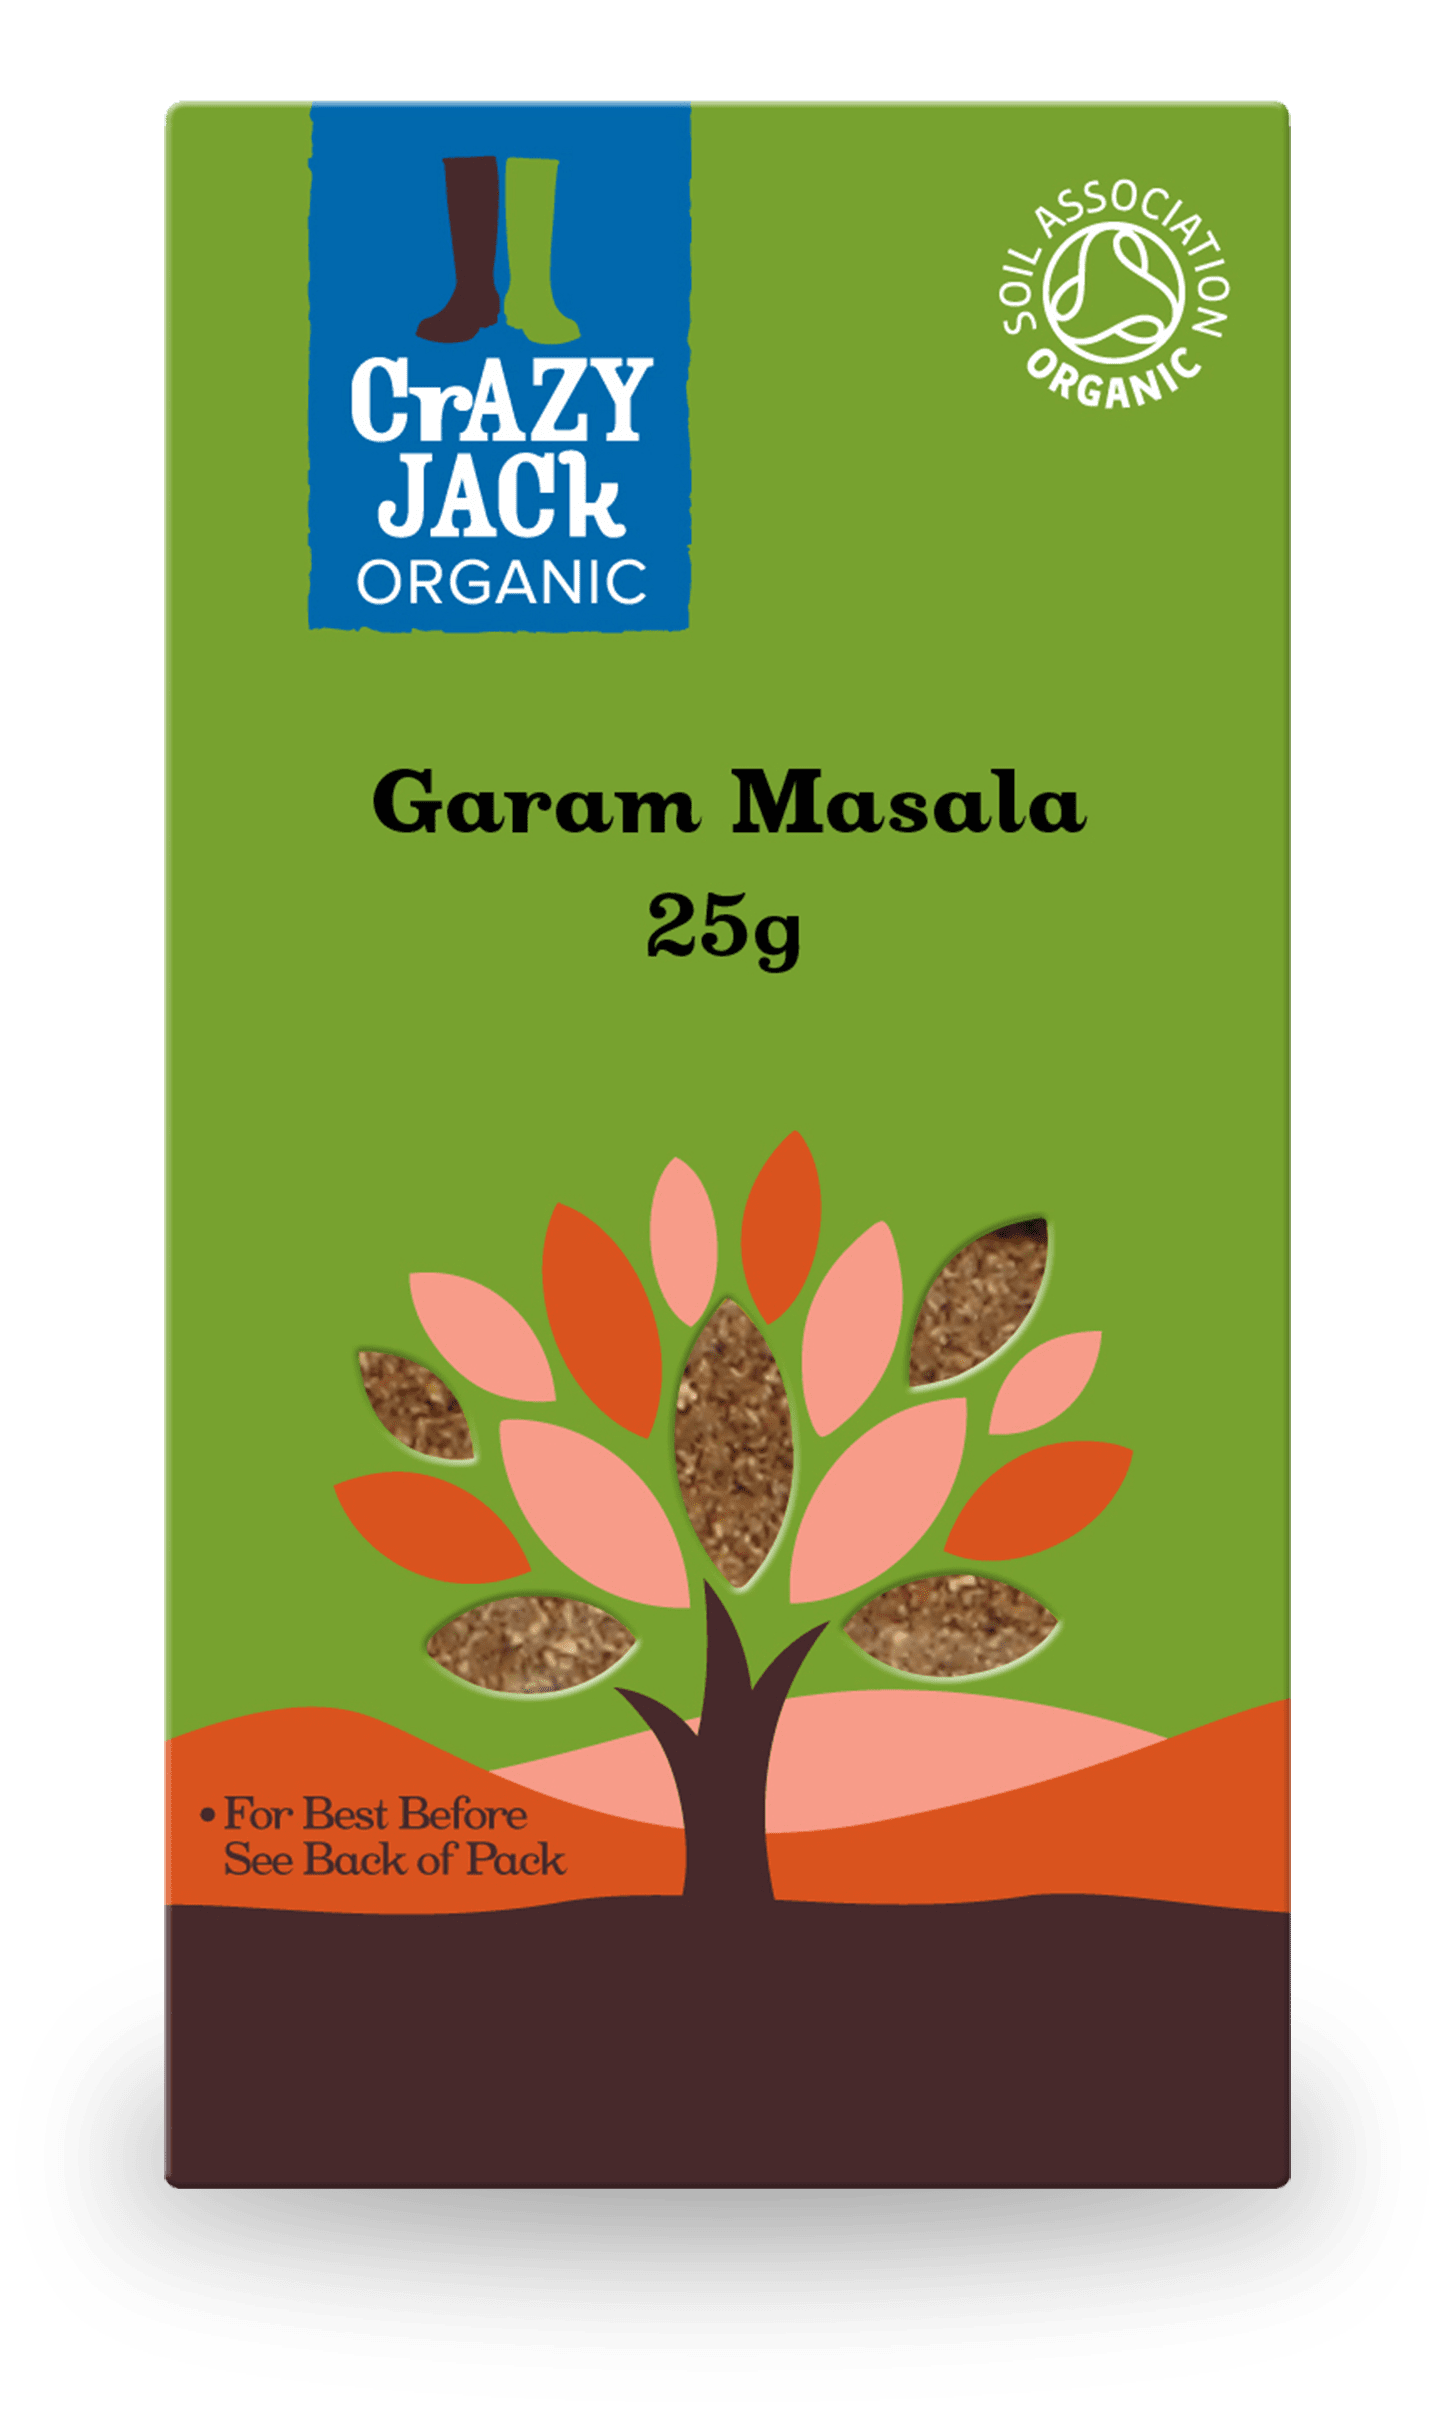 25g packet of garam masala